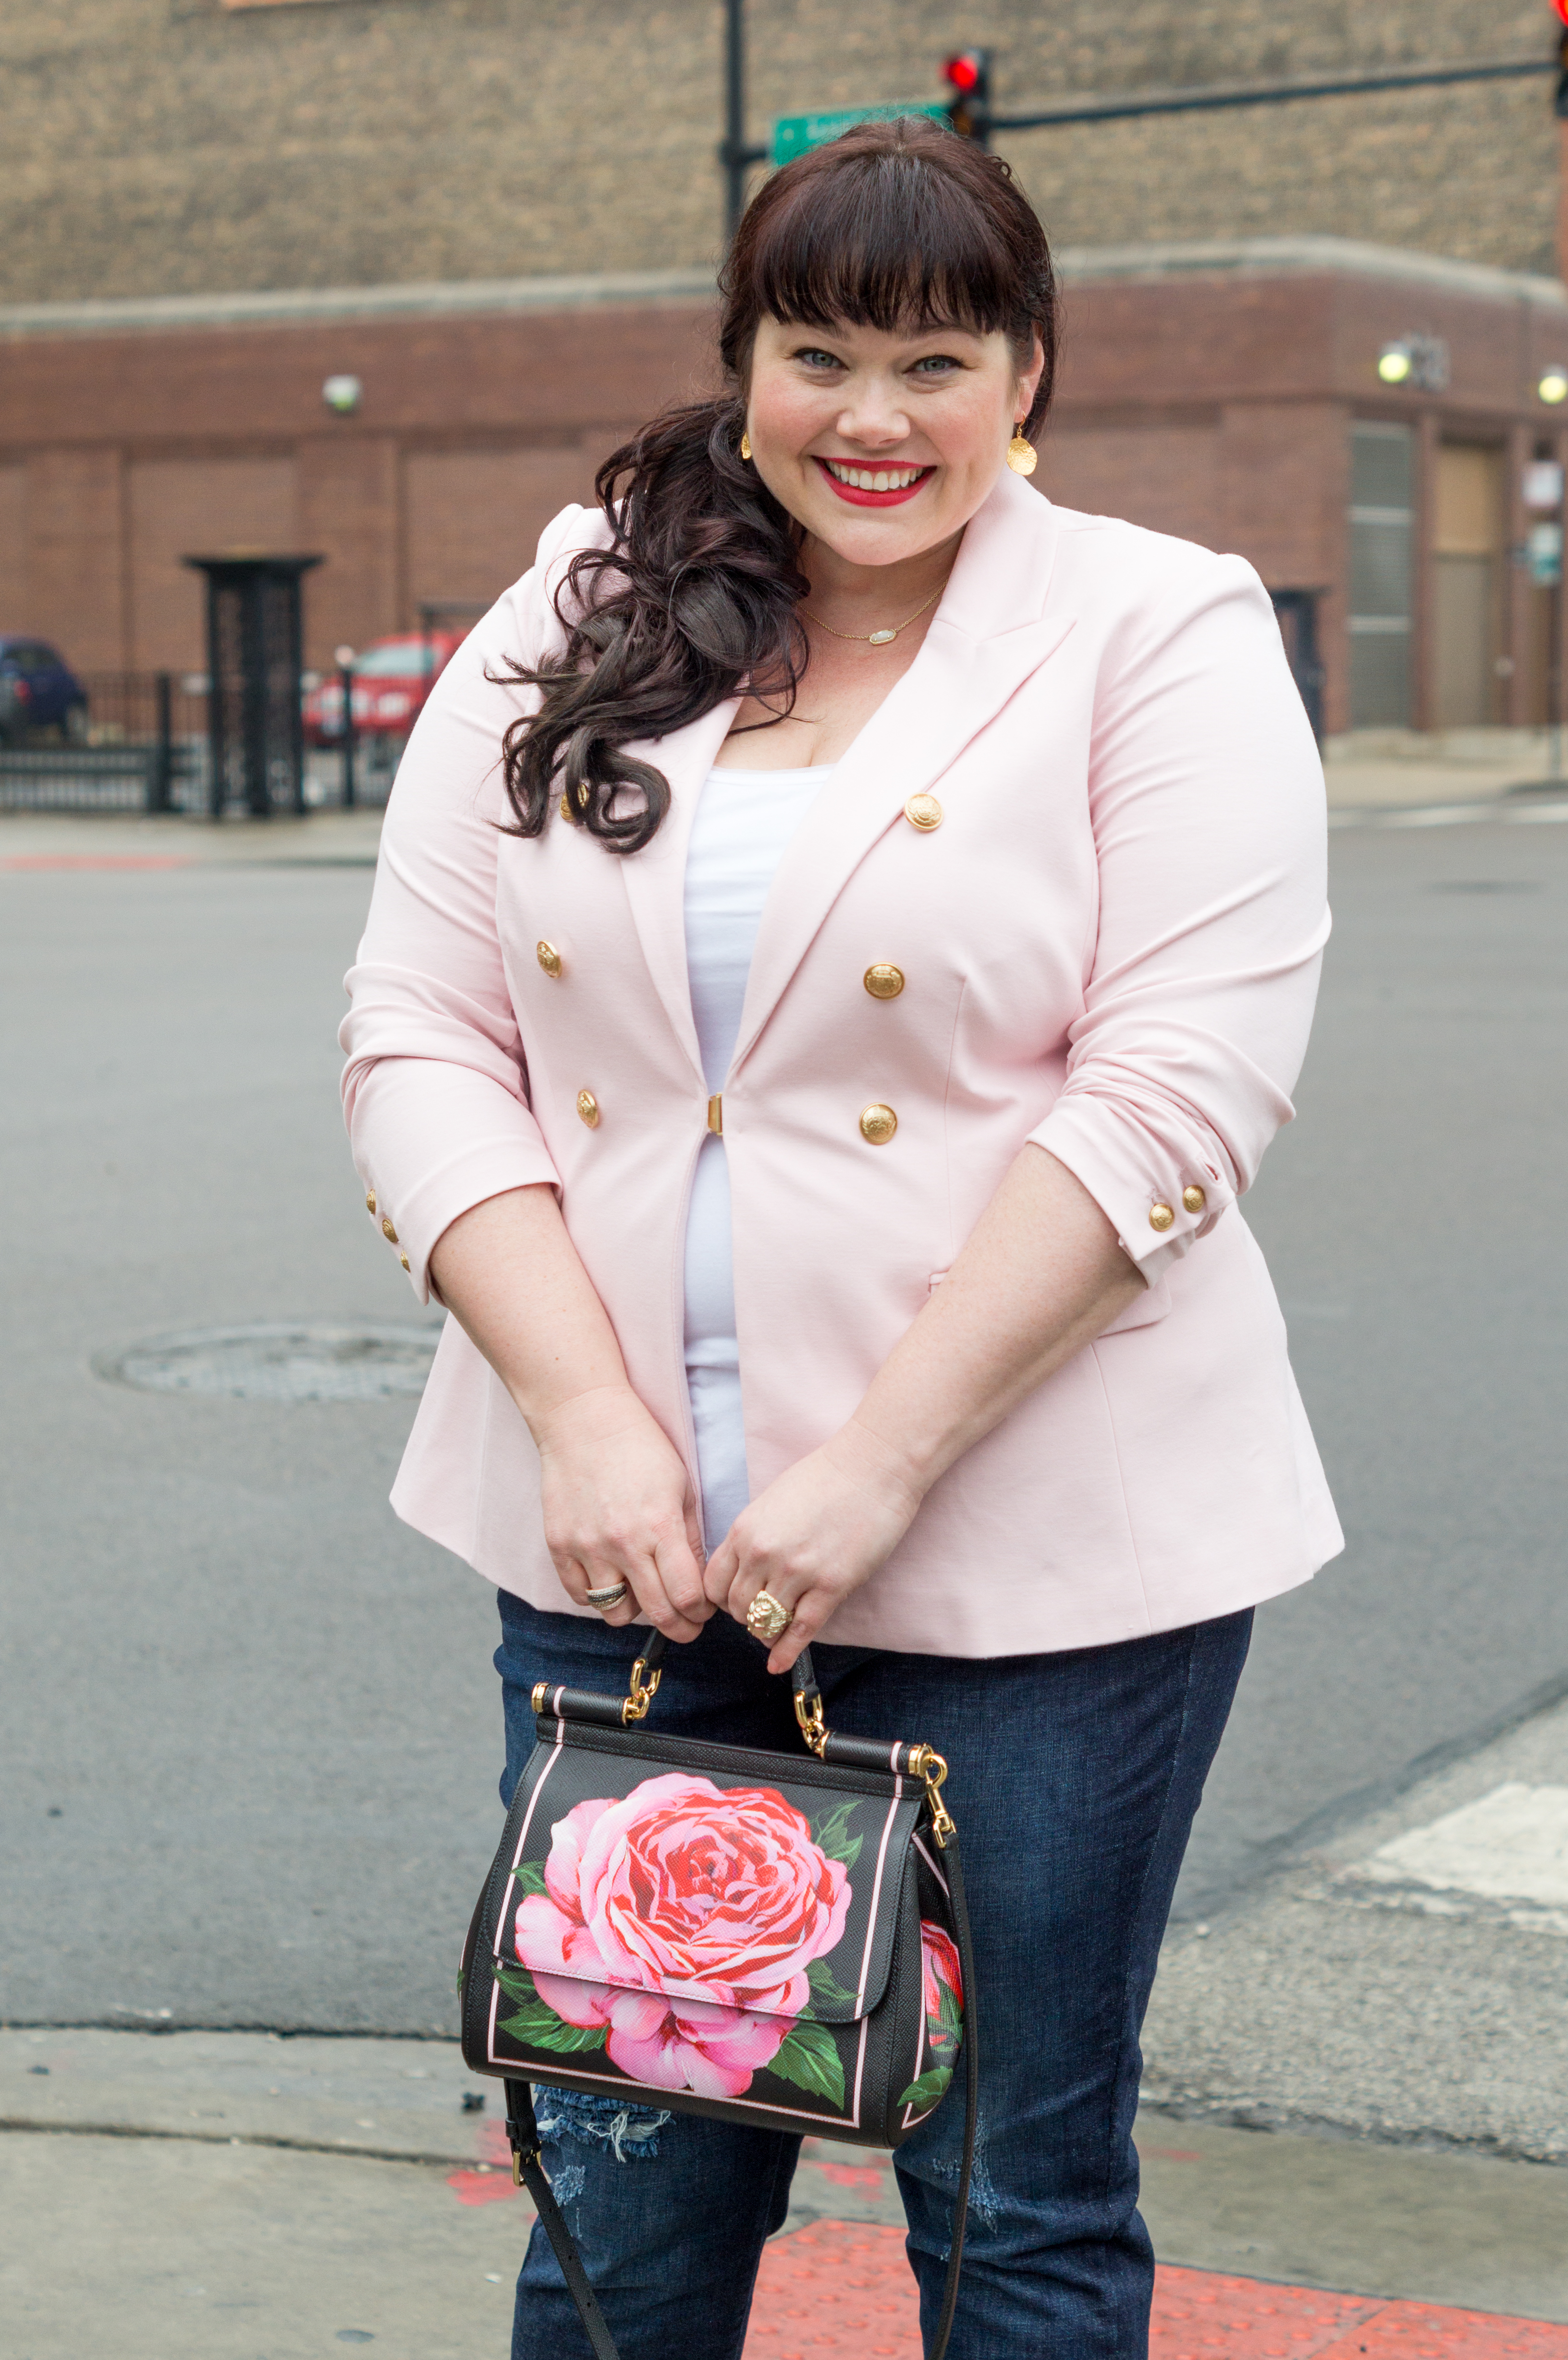 Plus Size Valentine's Day Look, Pink Blazer, Lane Bryant Blazer, Style Plus Curves, Chicago Model, Amber McCulloch, Top Plus Size Blogger